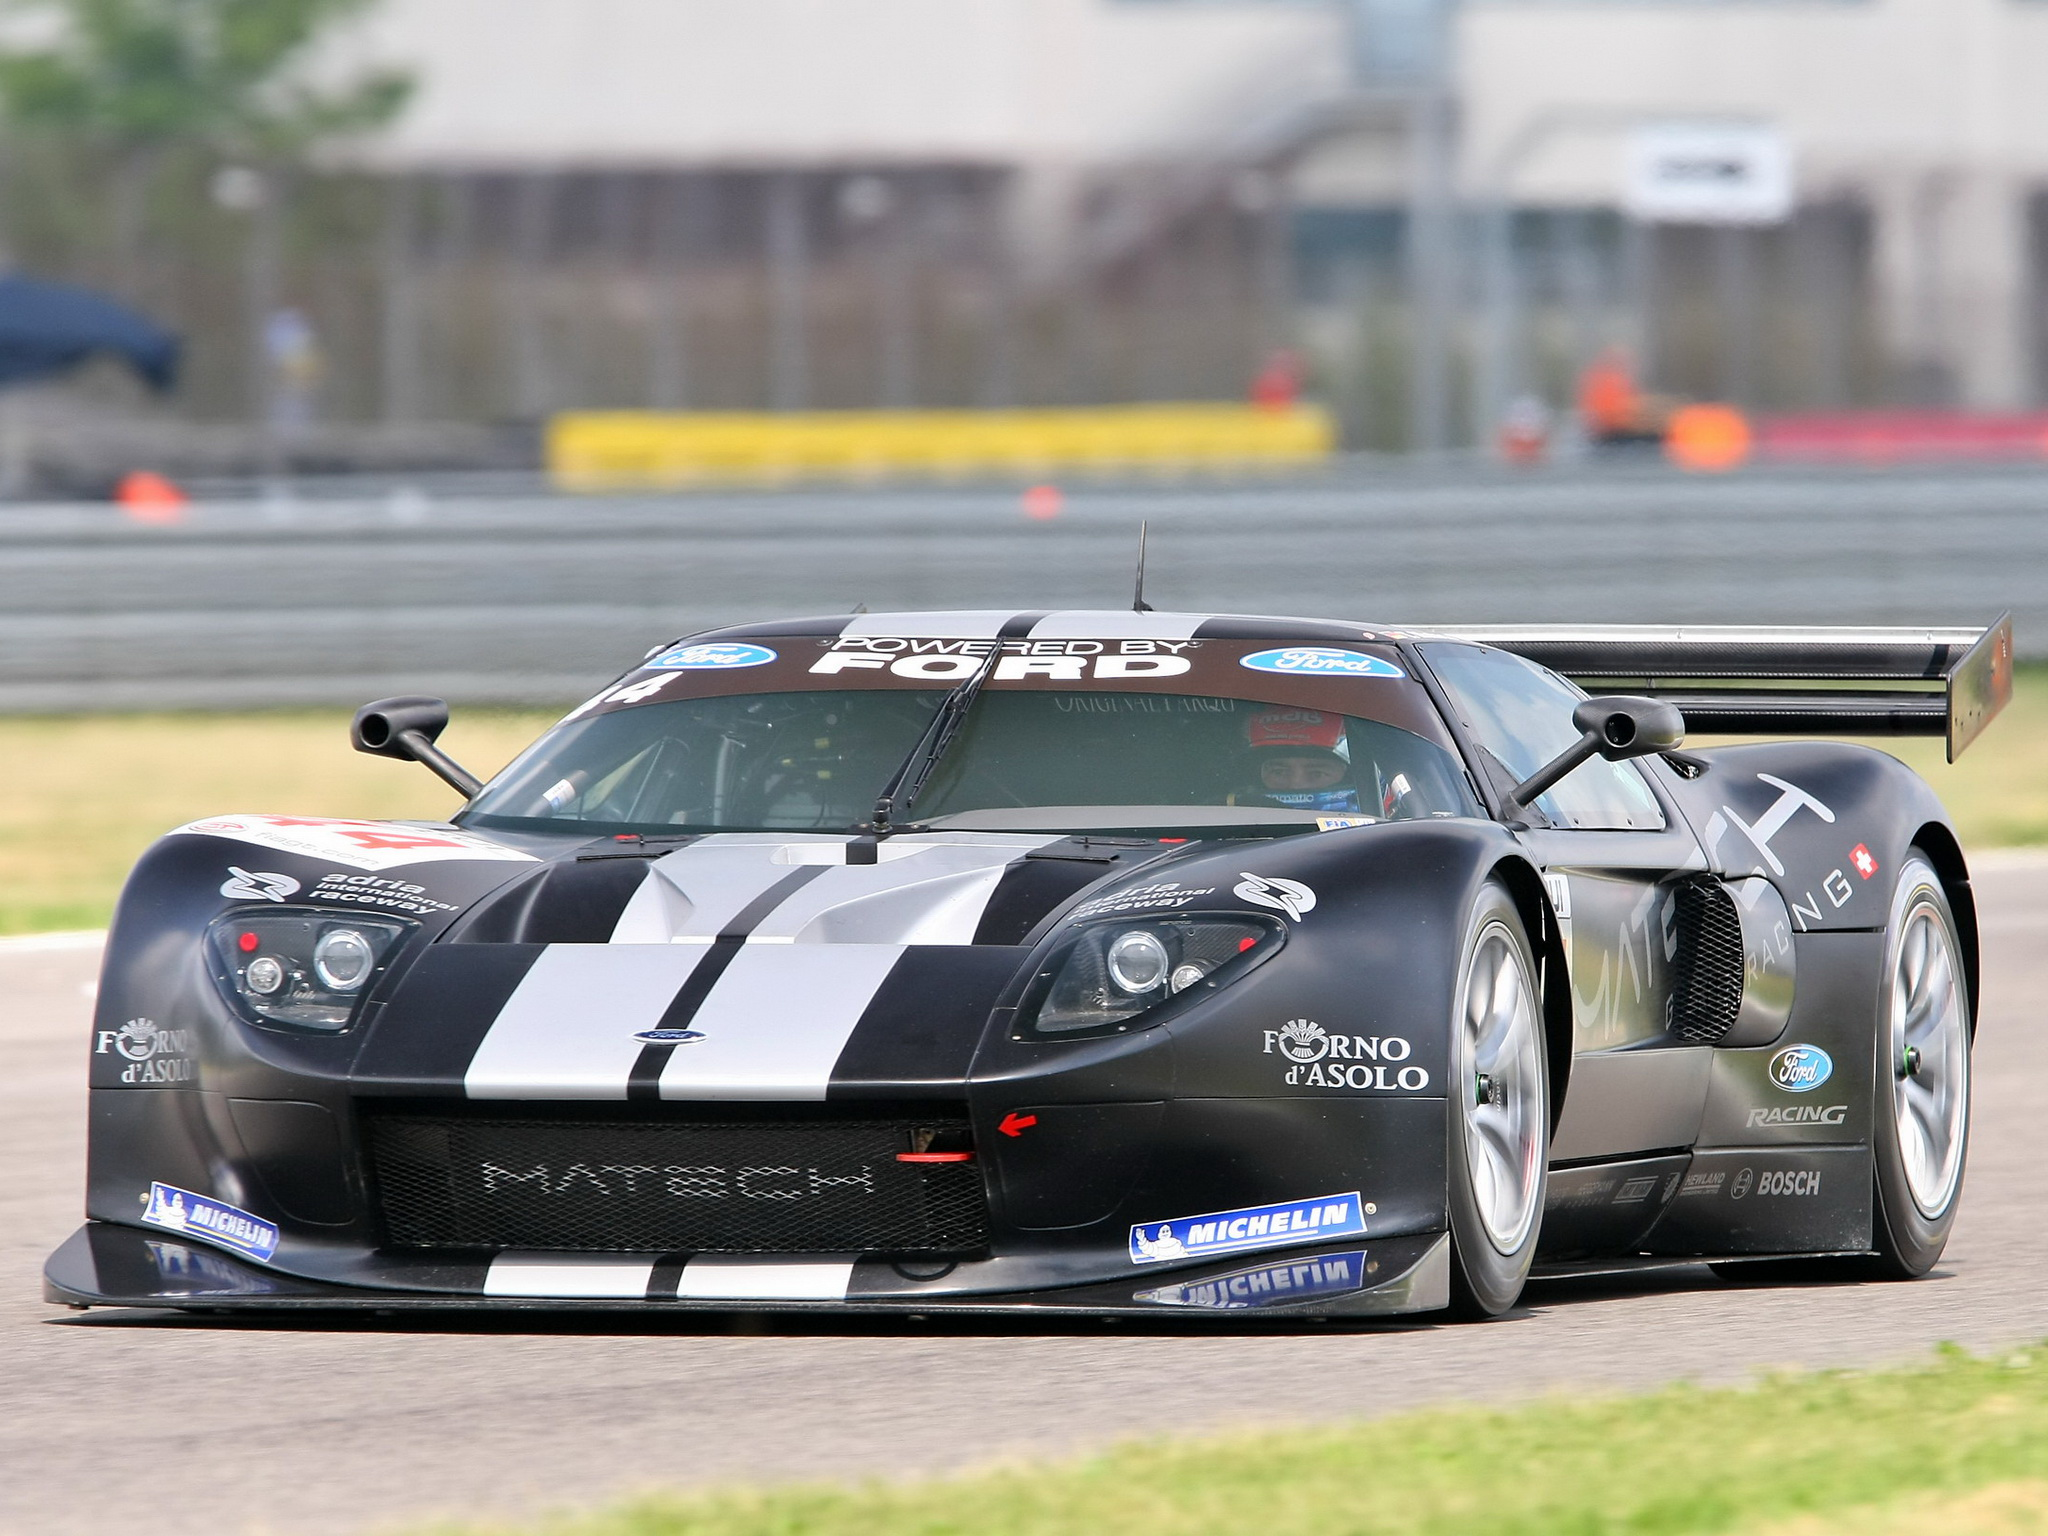 Matech Racing Ford Gt Supercar Supercars Race Racing Ford Gt